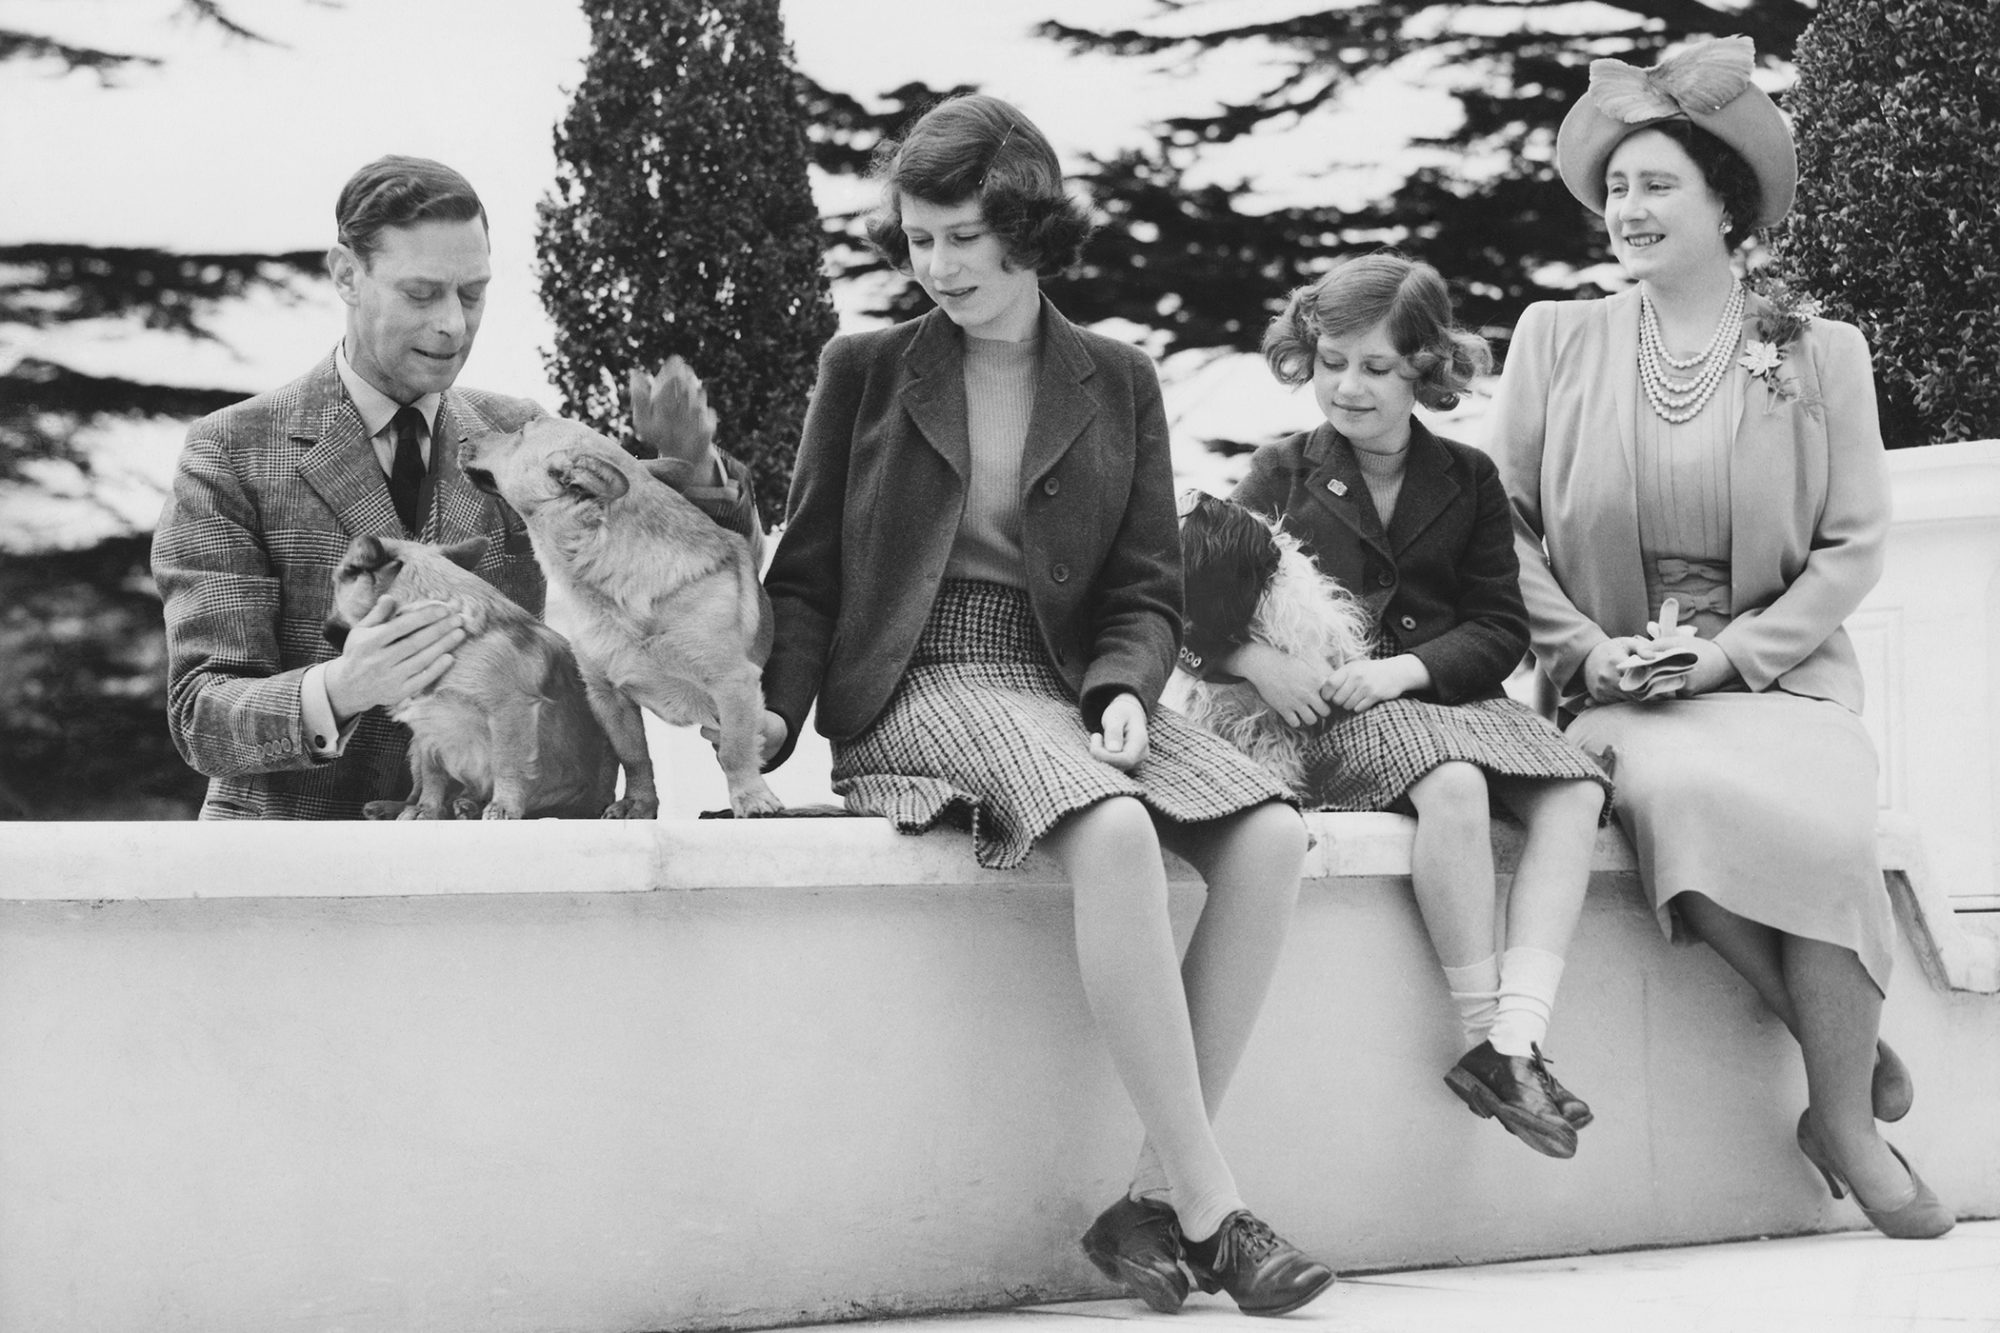 Teenaged Queen Elizabeth sits on ledge while petting dogs with family